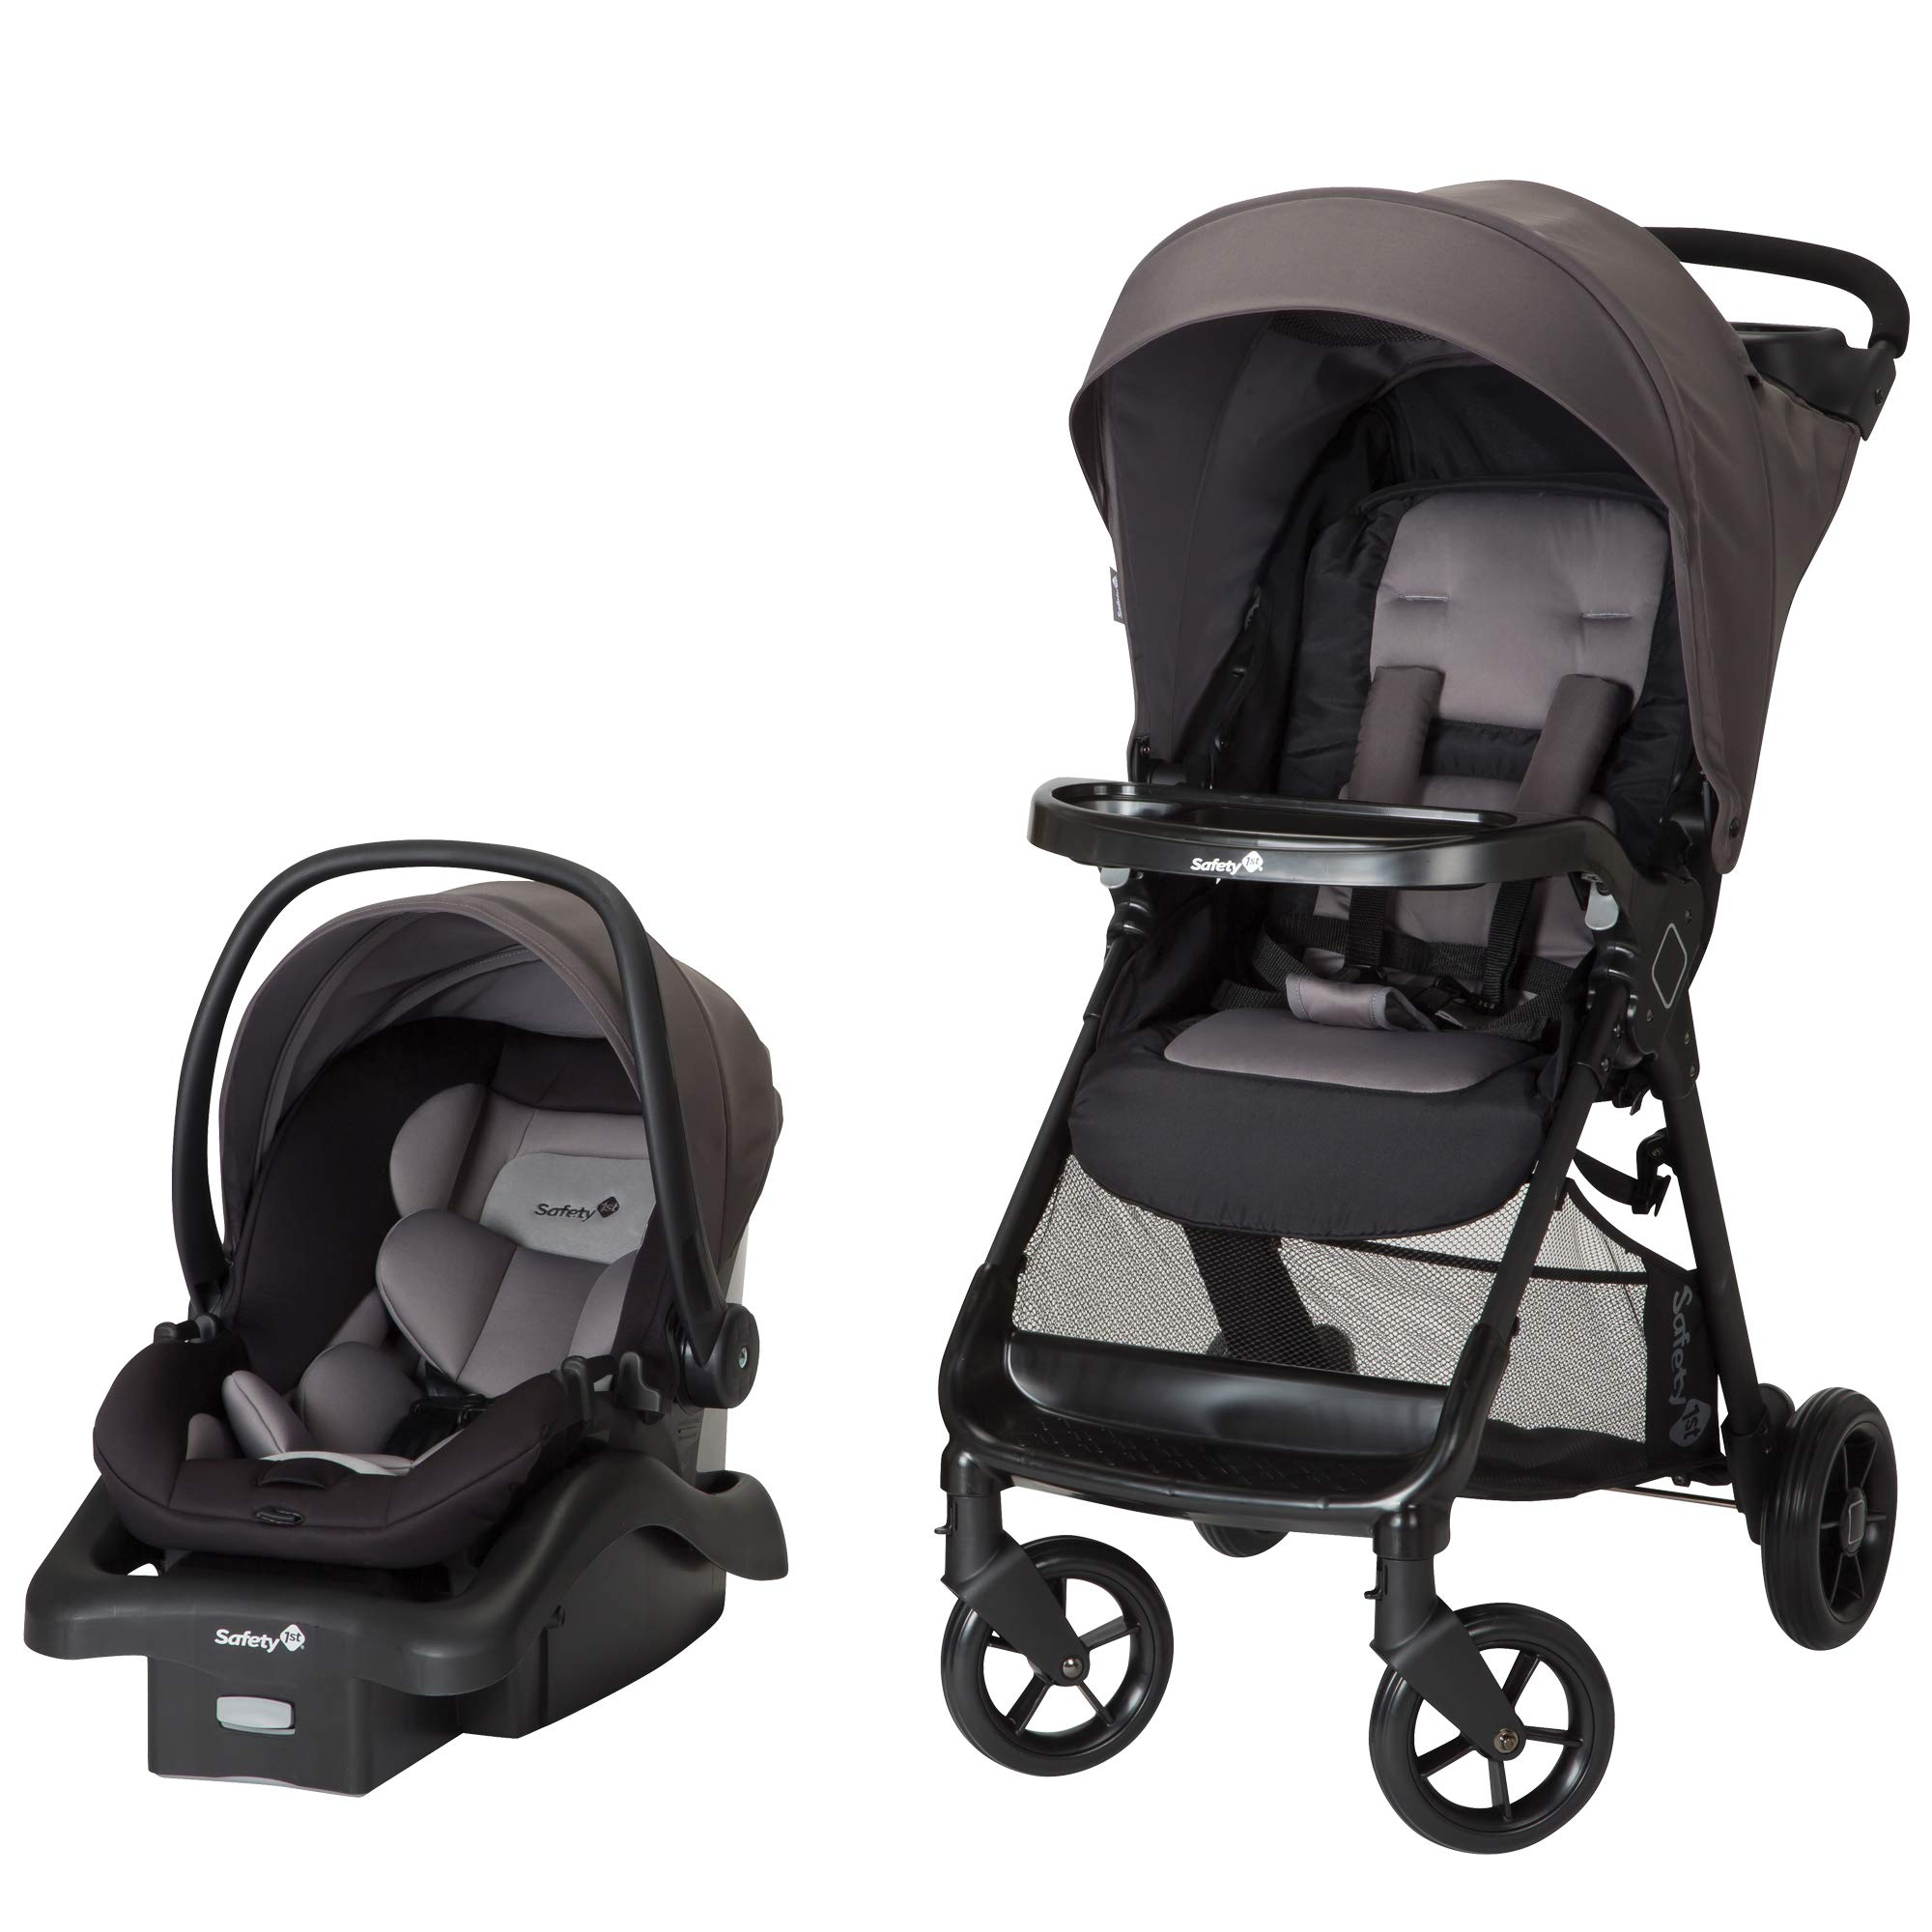 Safety 1st Smooth Ride Travel System with OnBoard 35 LT Infant Car Seat, Monument 2 by Safety 1st